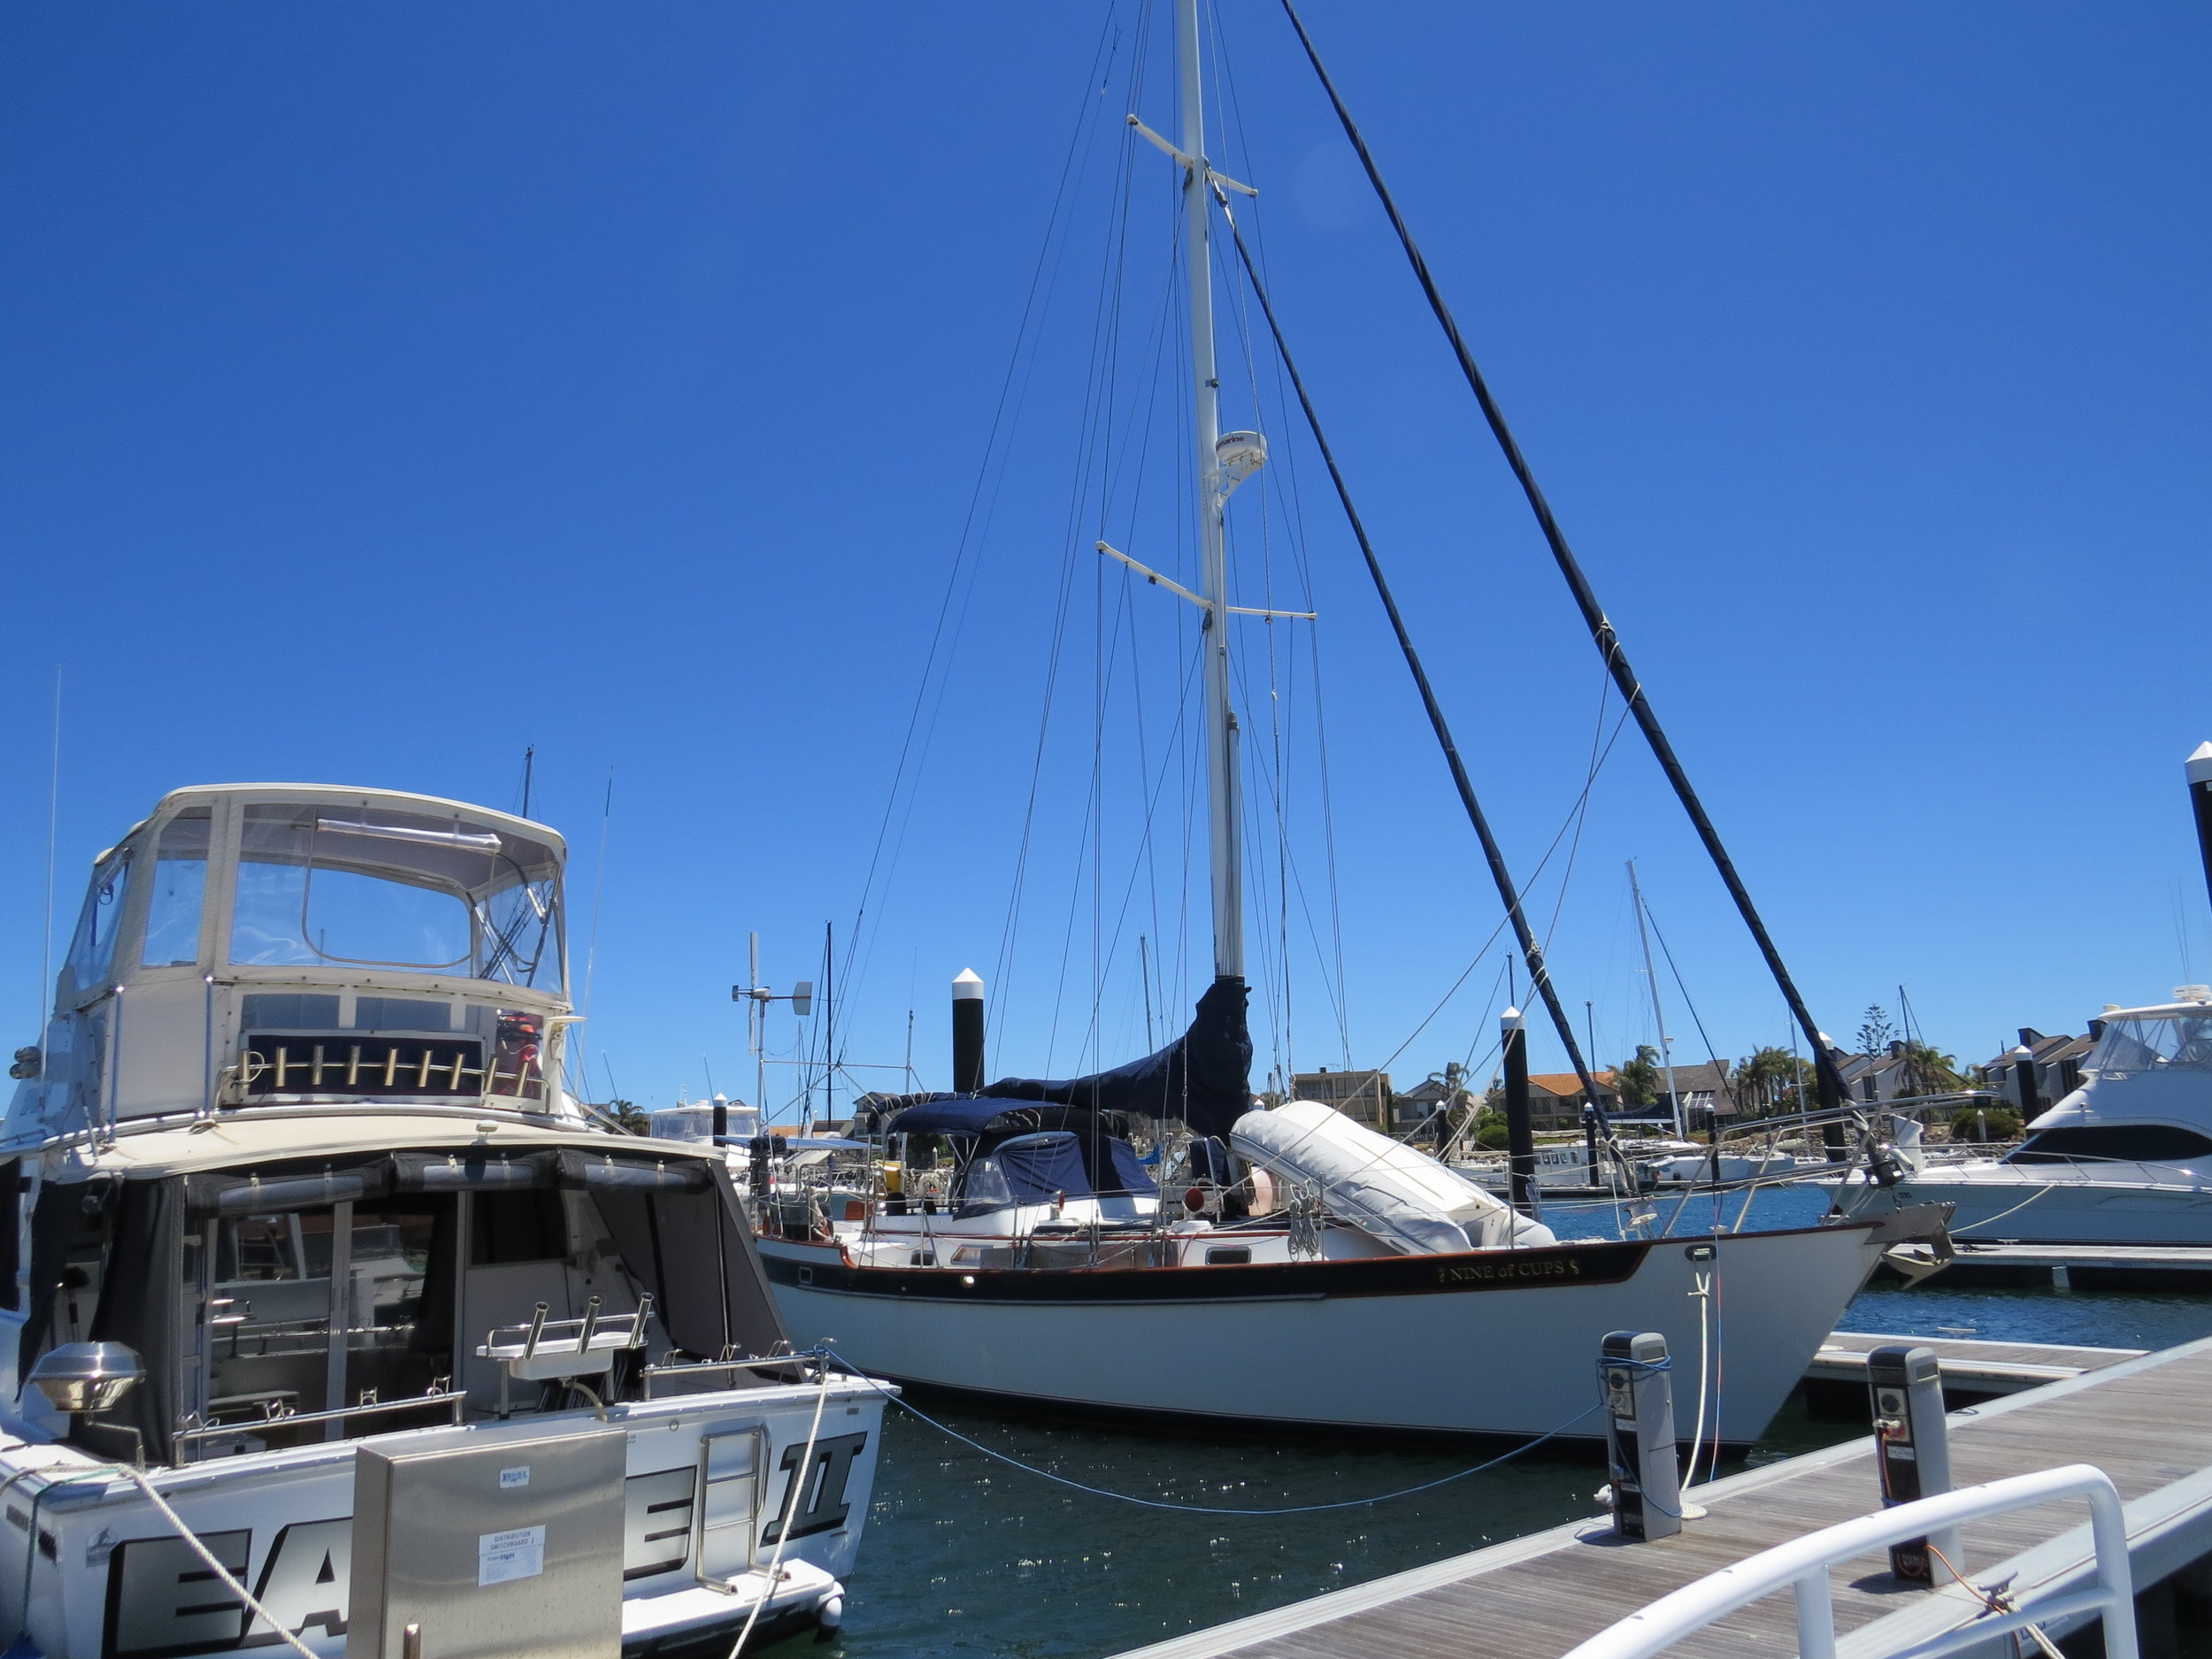 Nine of Cups waited patiently for our return to the Crown Marina near Port Adelaide, South Australia